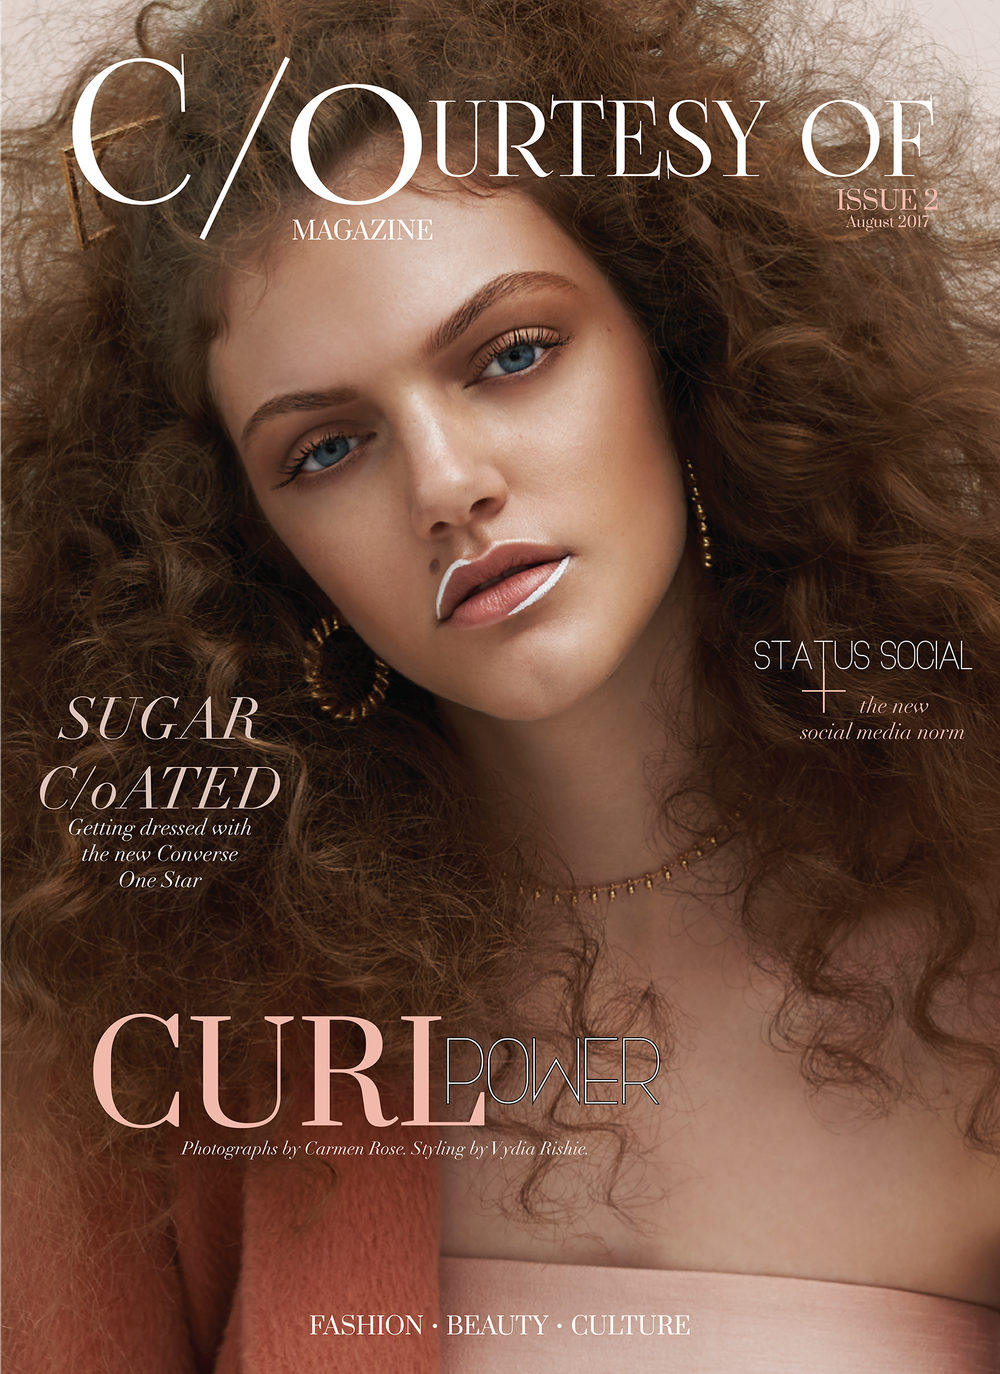 CURLPOWER - C/OURTESY OF Magazine